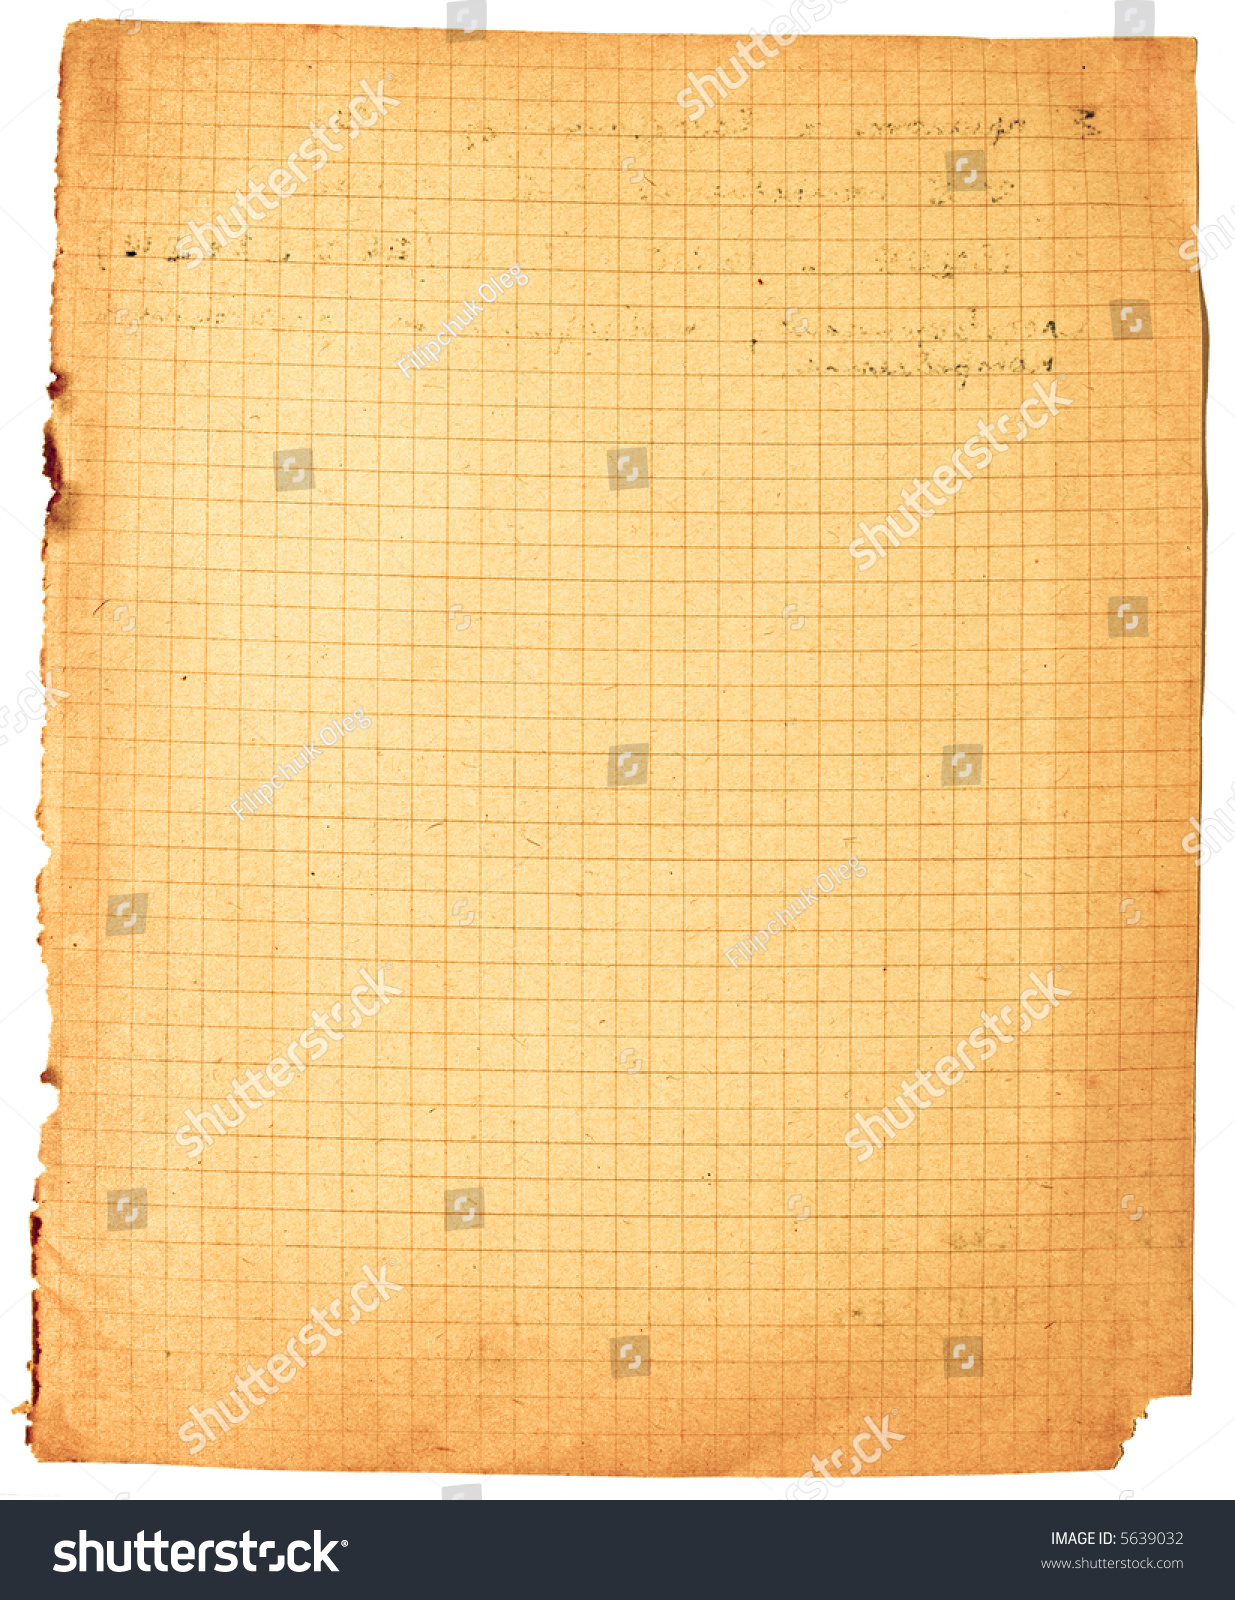 old yellow uneven lined paper ragged stock photo (edit now) 5639032